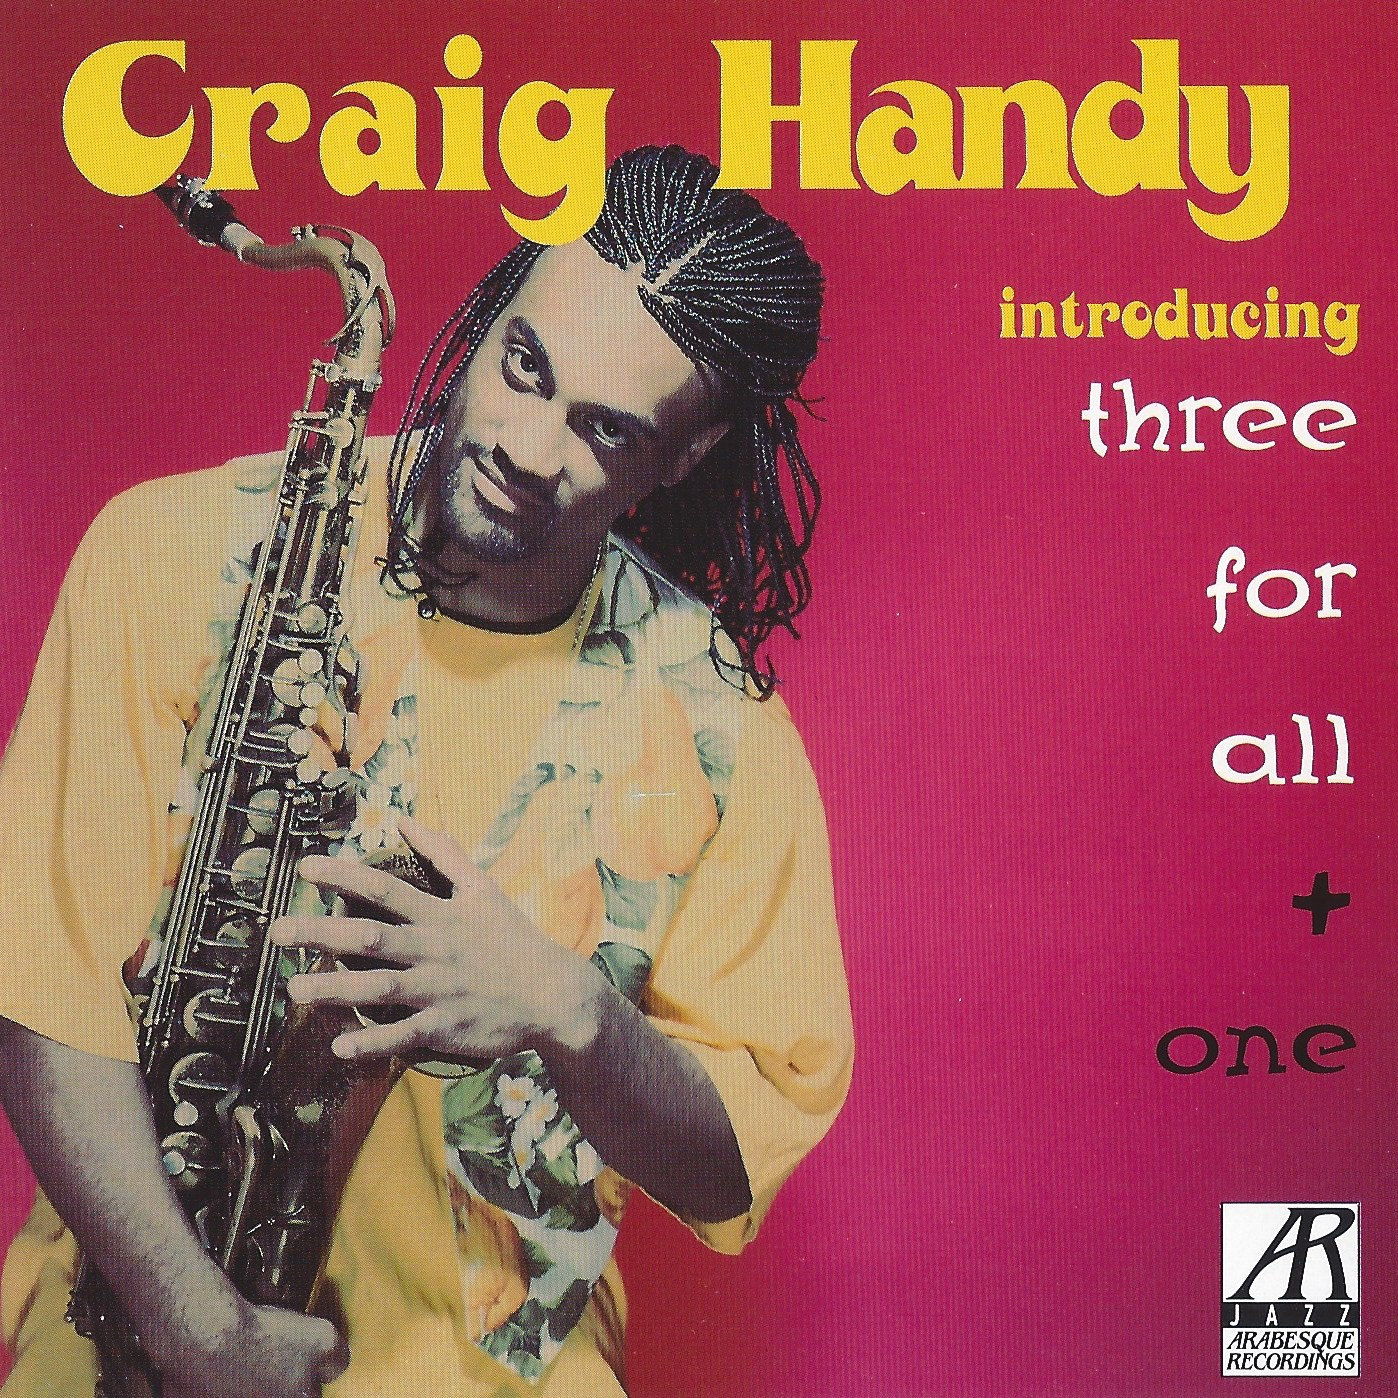 AJ0109 |  Introducing Three For All + One  | Craig Handy